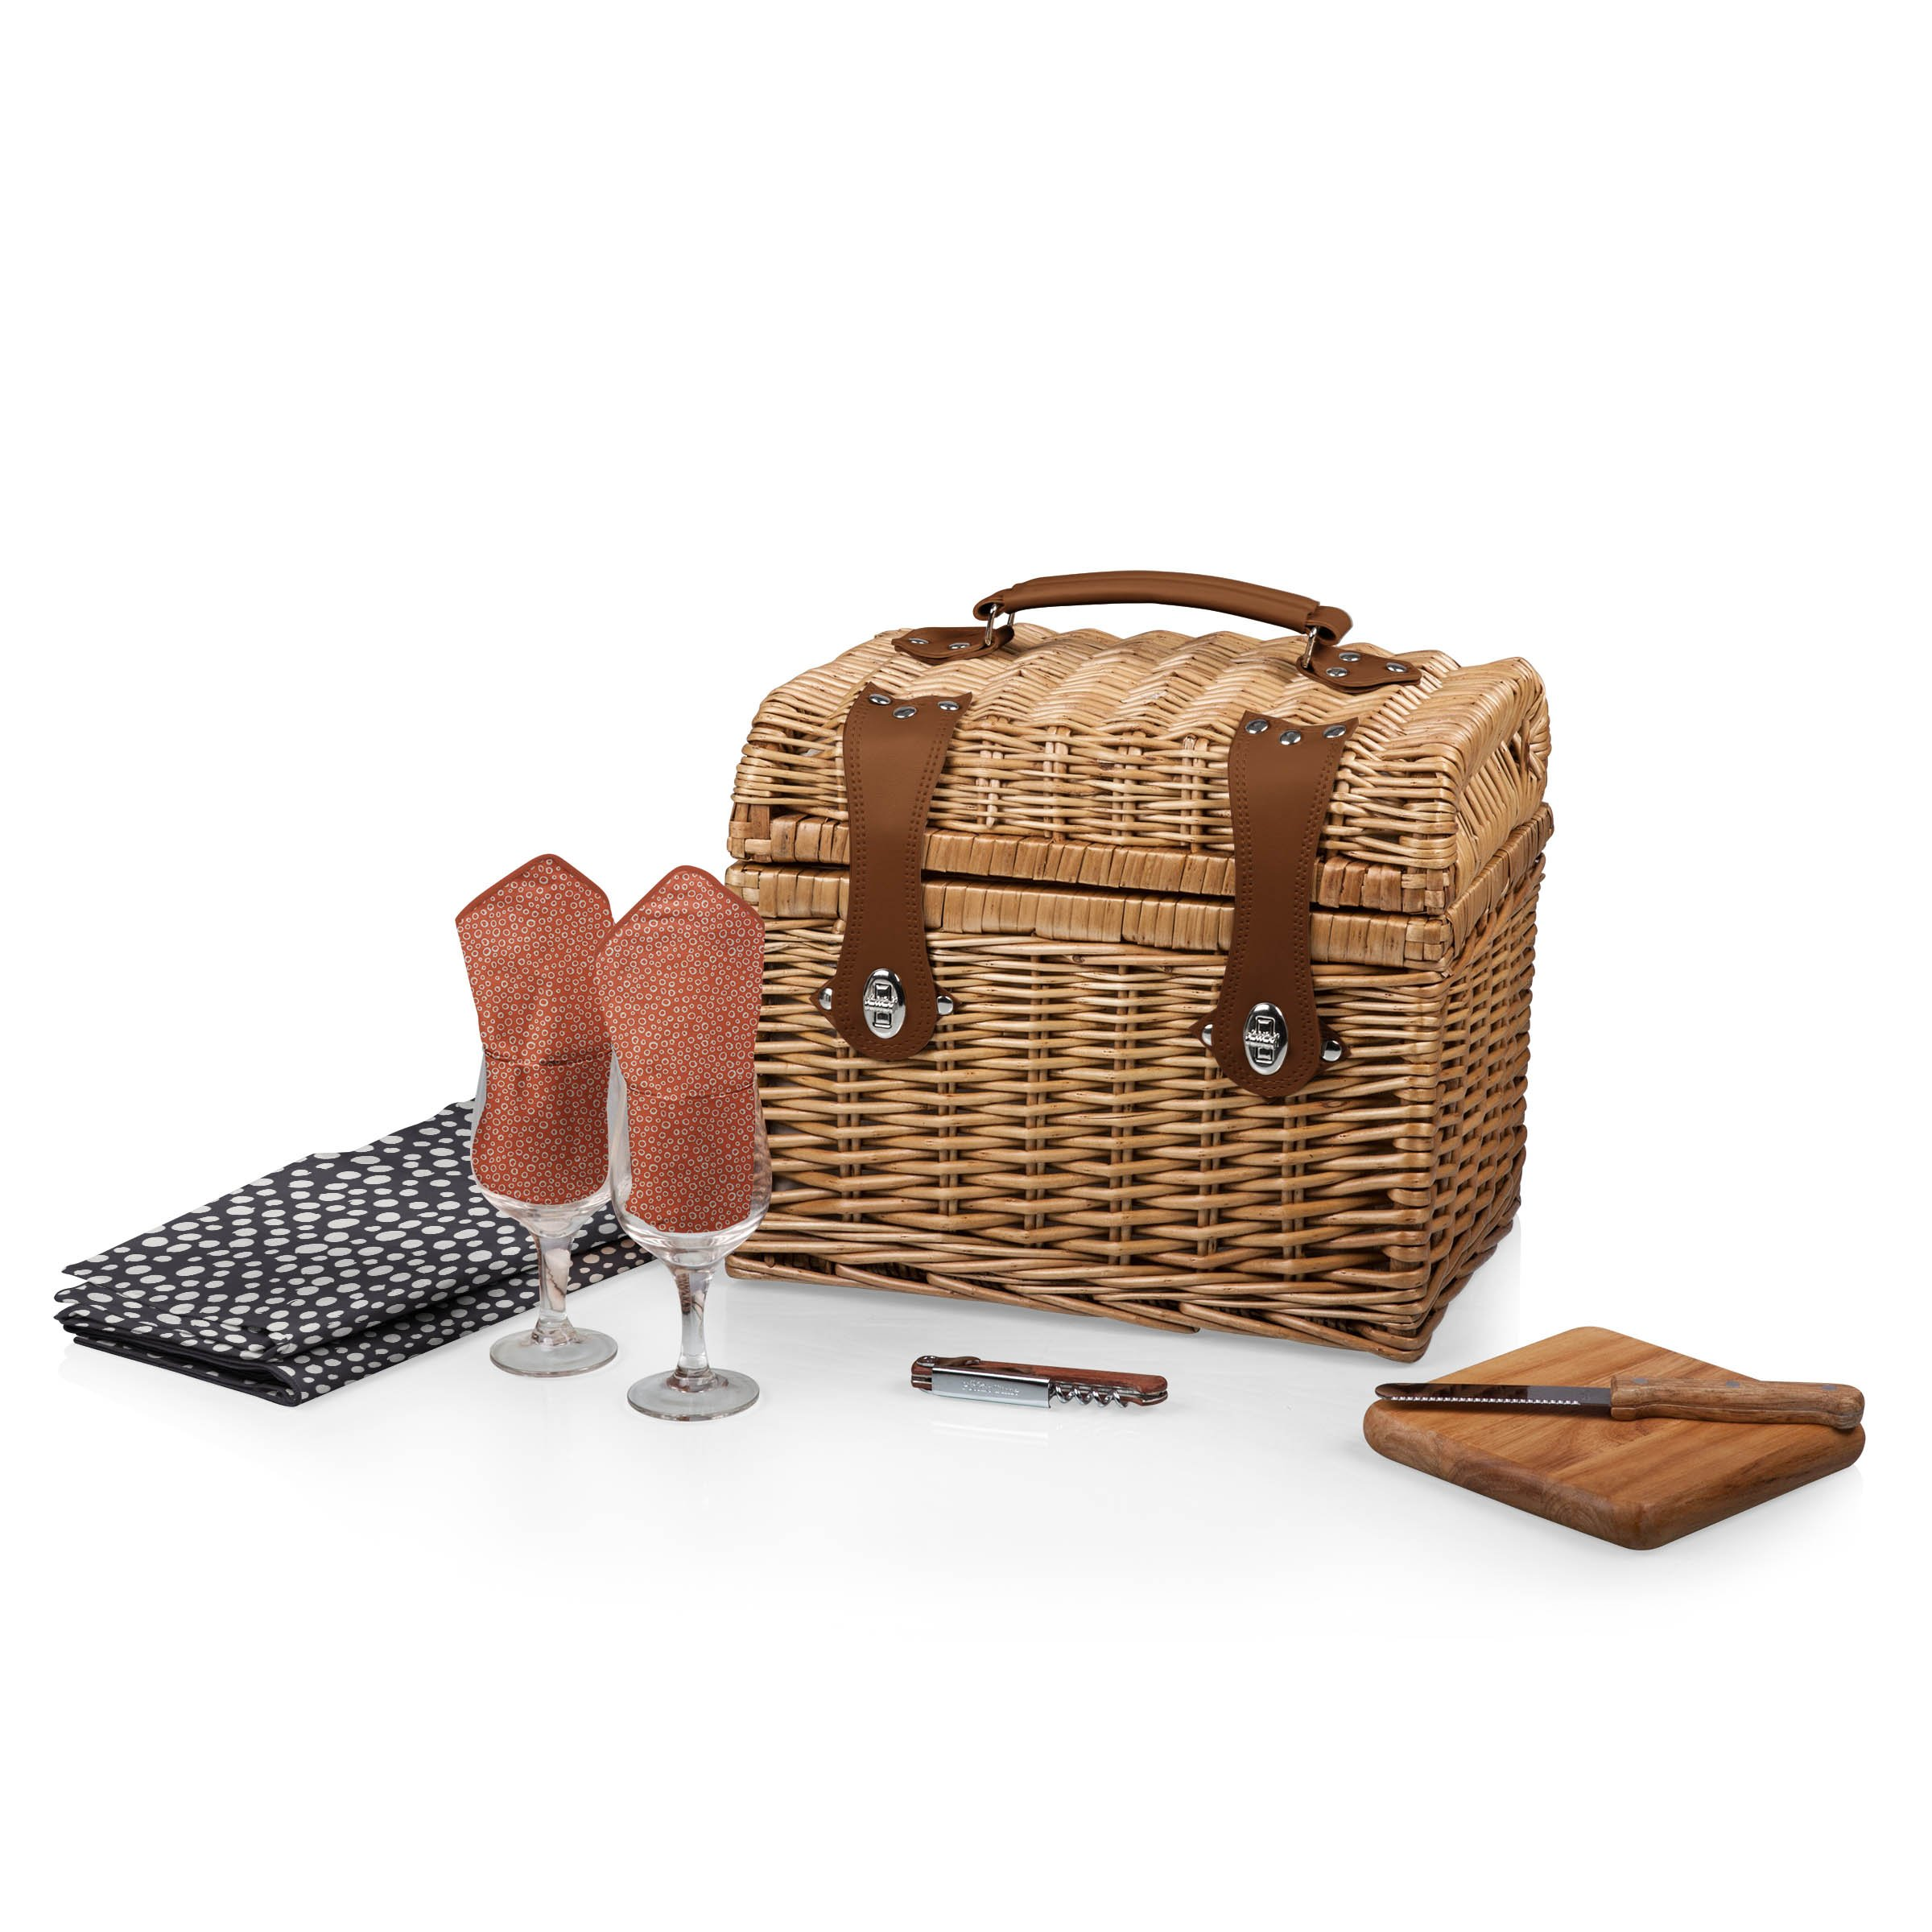 Picnic Time 'Napa' Picnic Basket with Wine and Cheese Service for Two, Adeline Collection